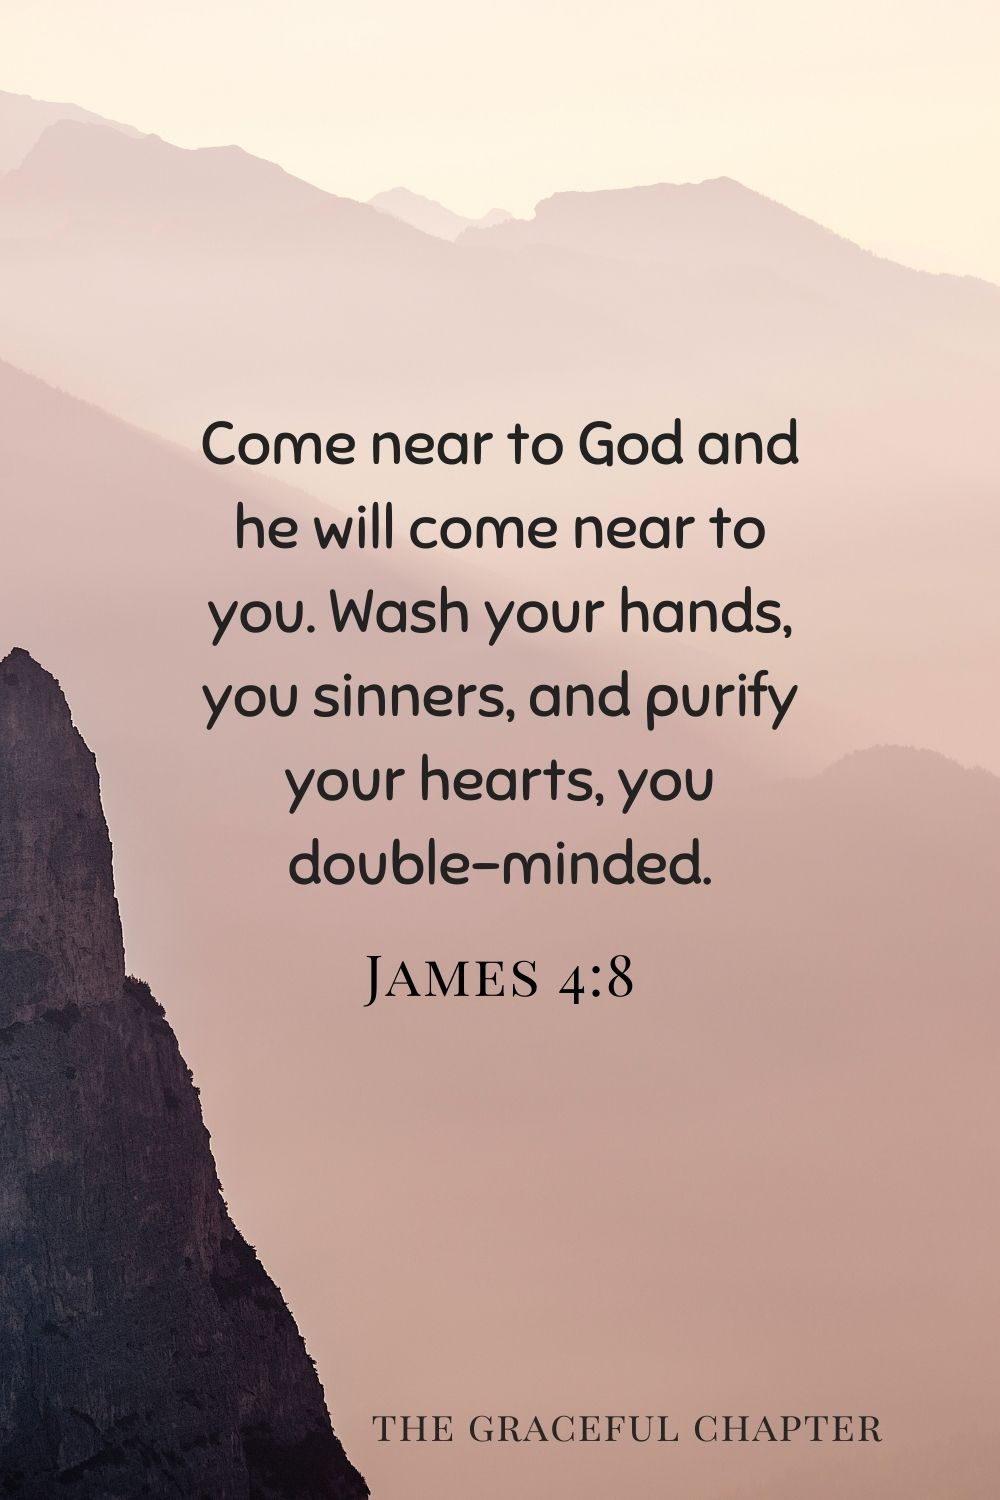 Come near to God and he will come near to you. Wash your hands, you sinners, and purify your hearts, you double-minded. James 4:8